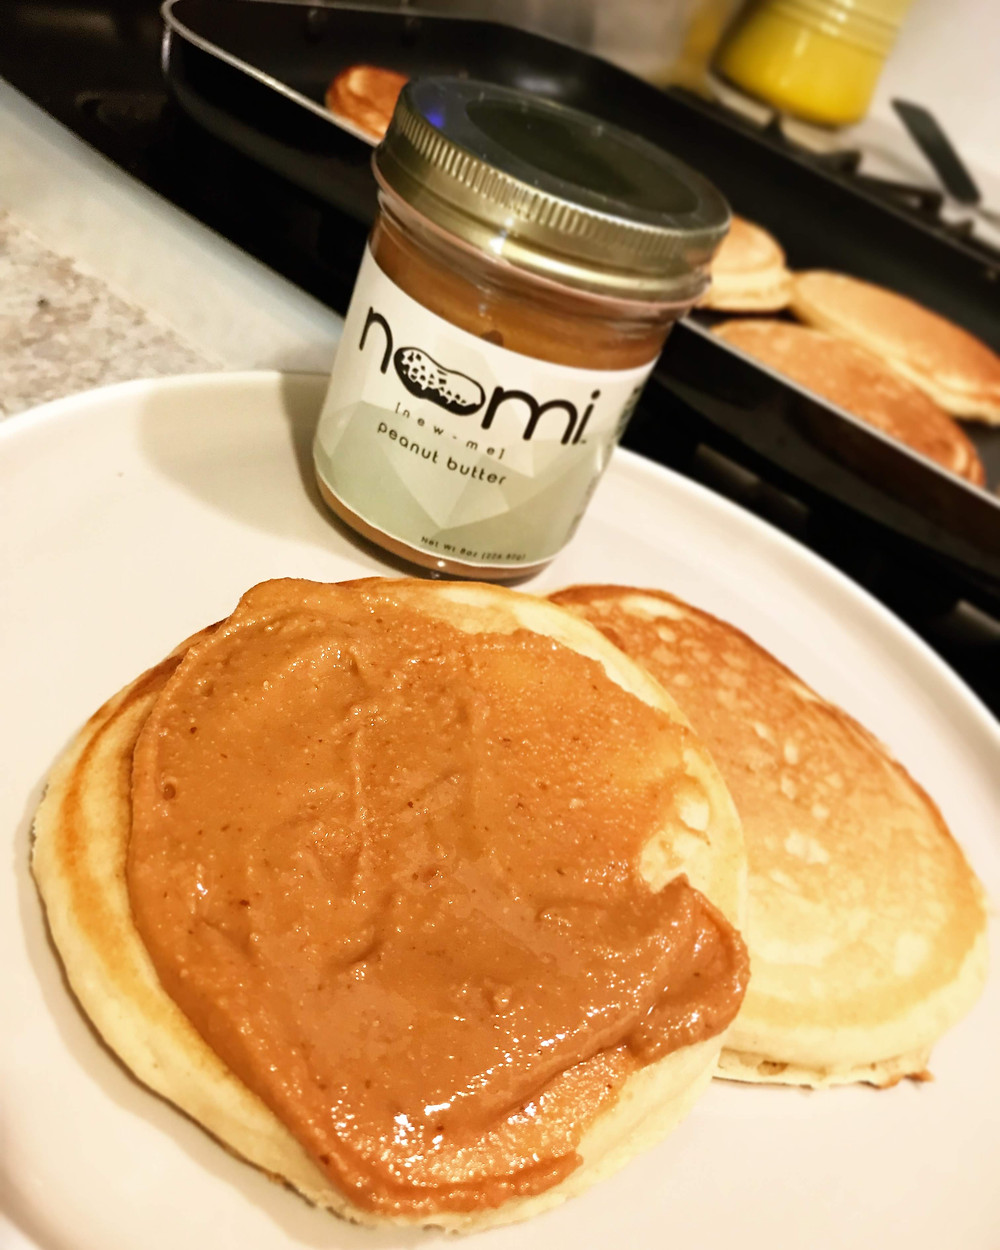 Pancakes with Noomi peanut butter